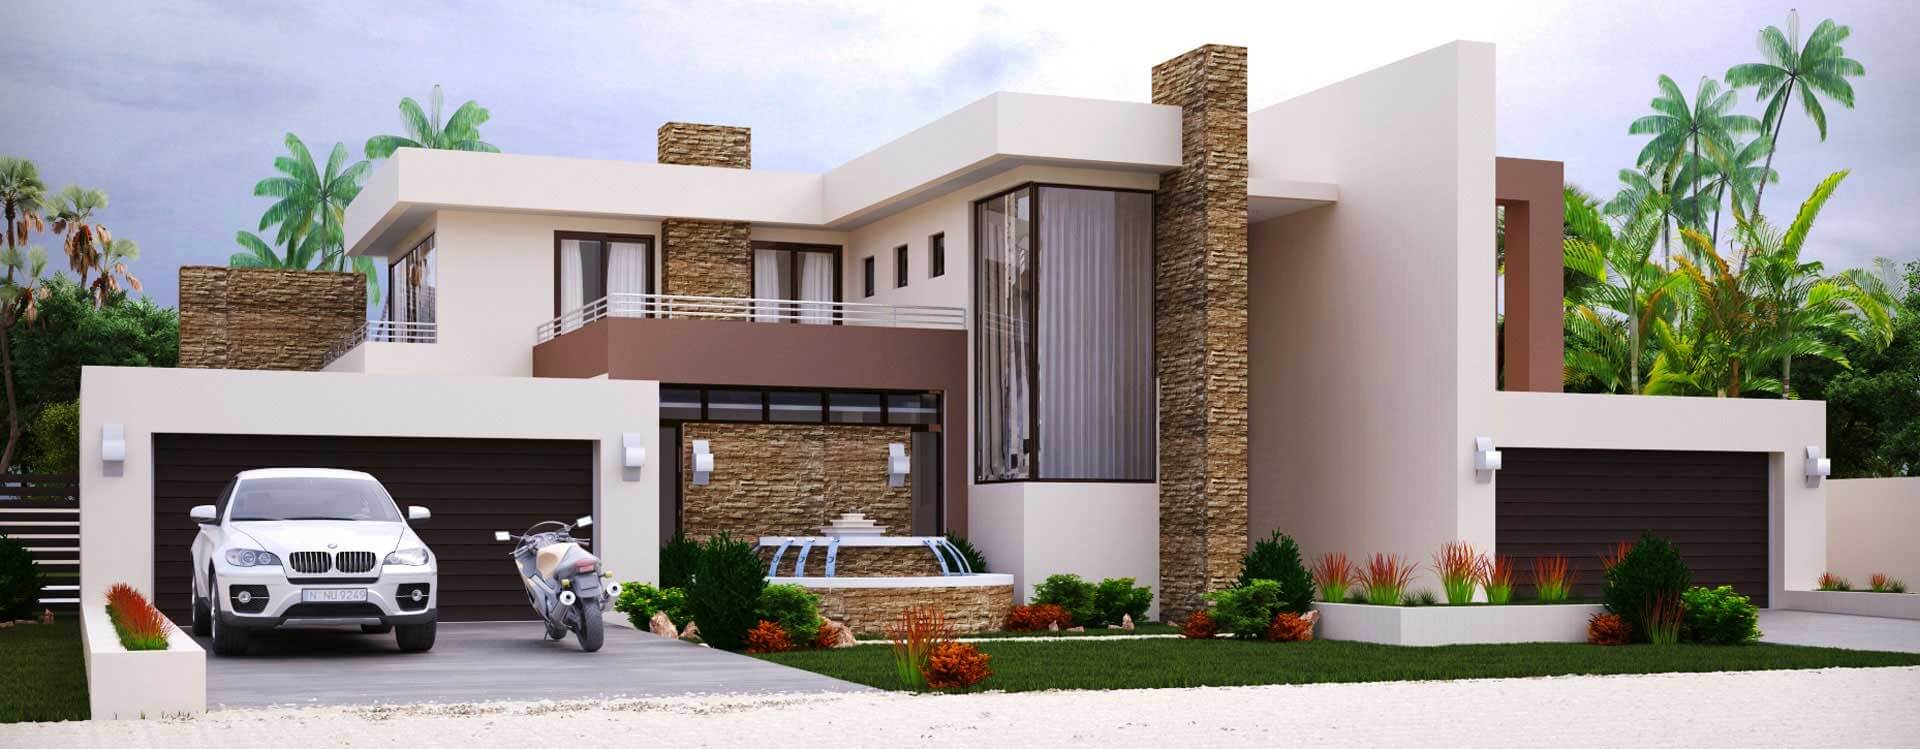 Modern Style House Plan, 4 Bedroom, Double Storey Floor Plans, Home Design,